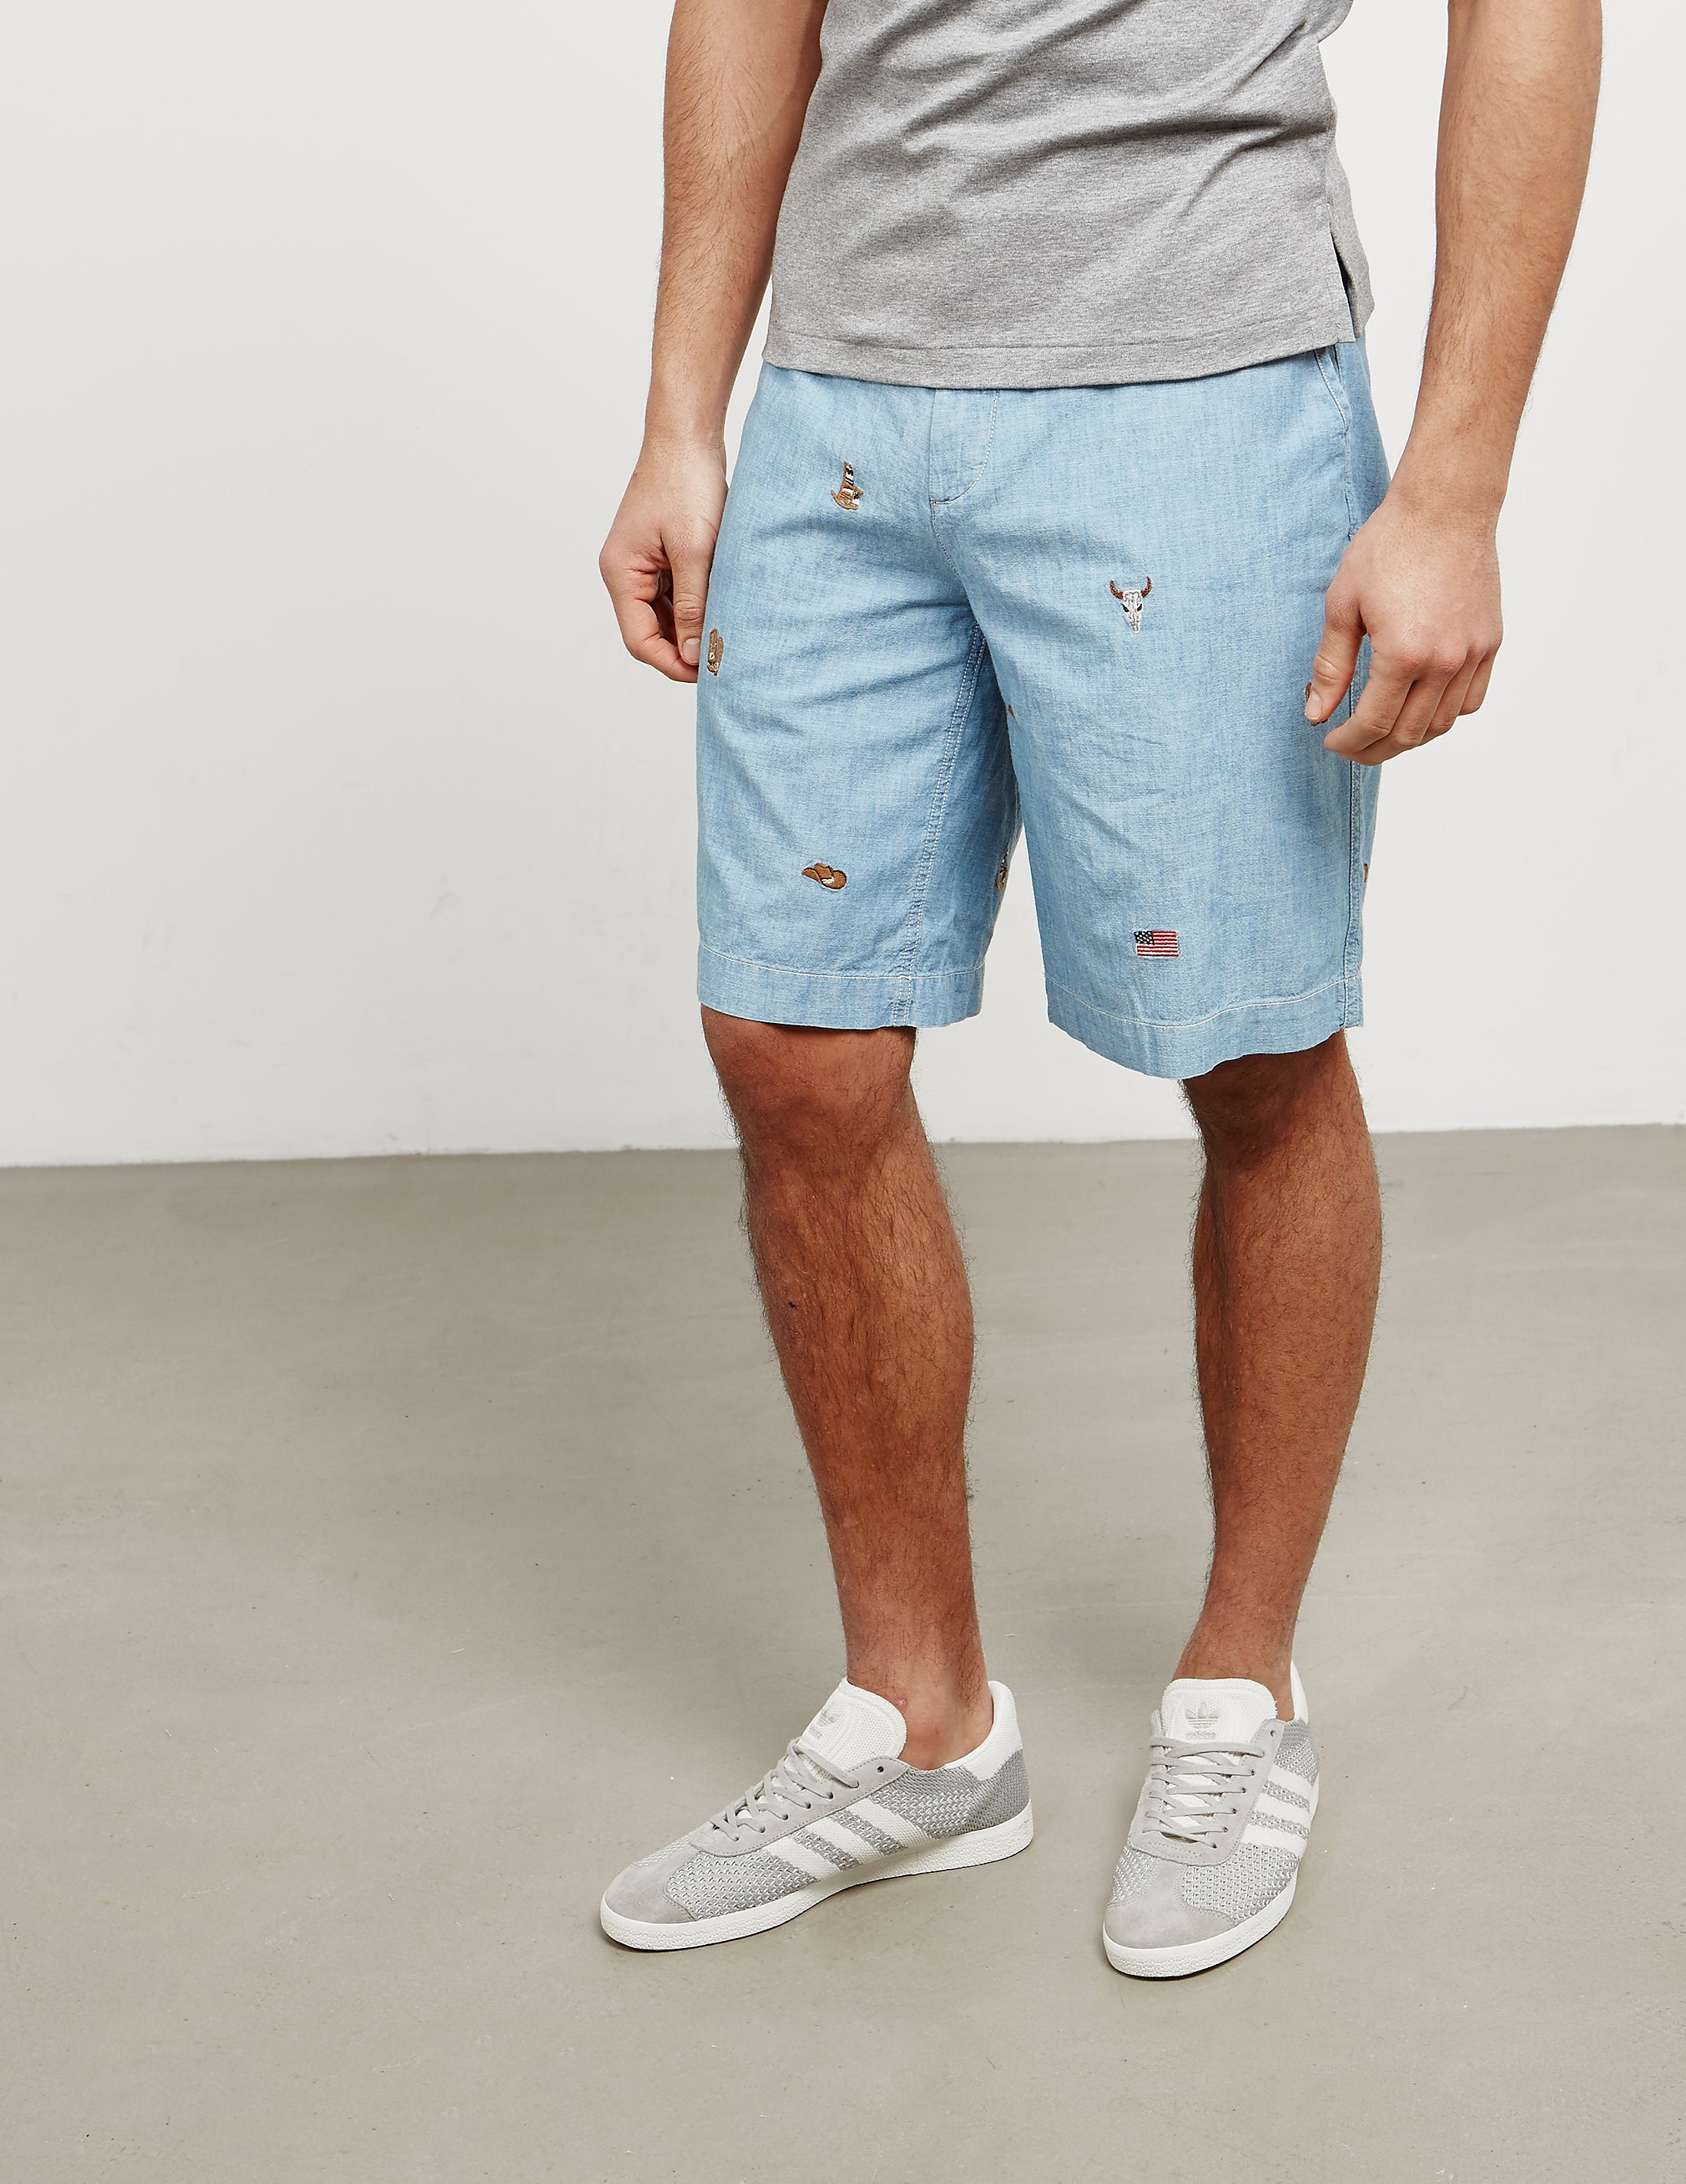 Polo Ralph Lauren Embroidered Shorts